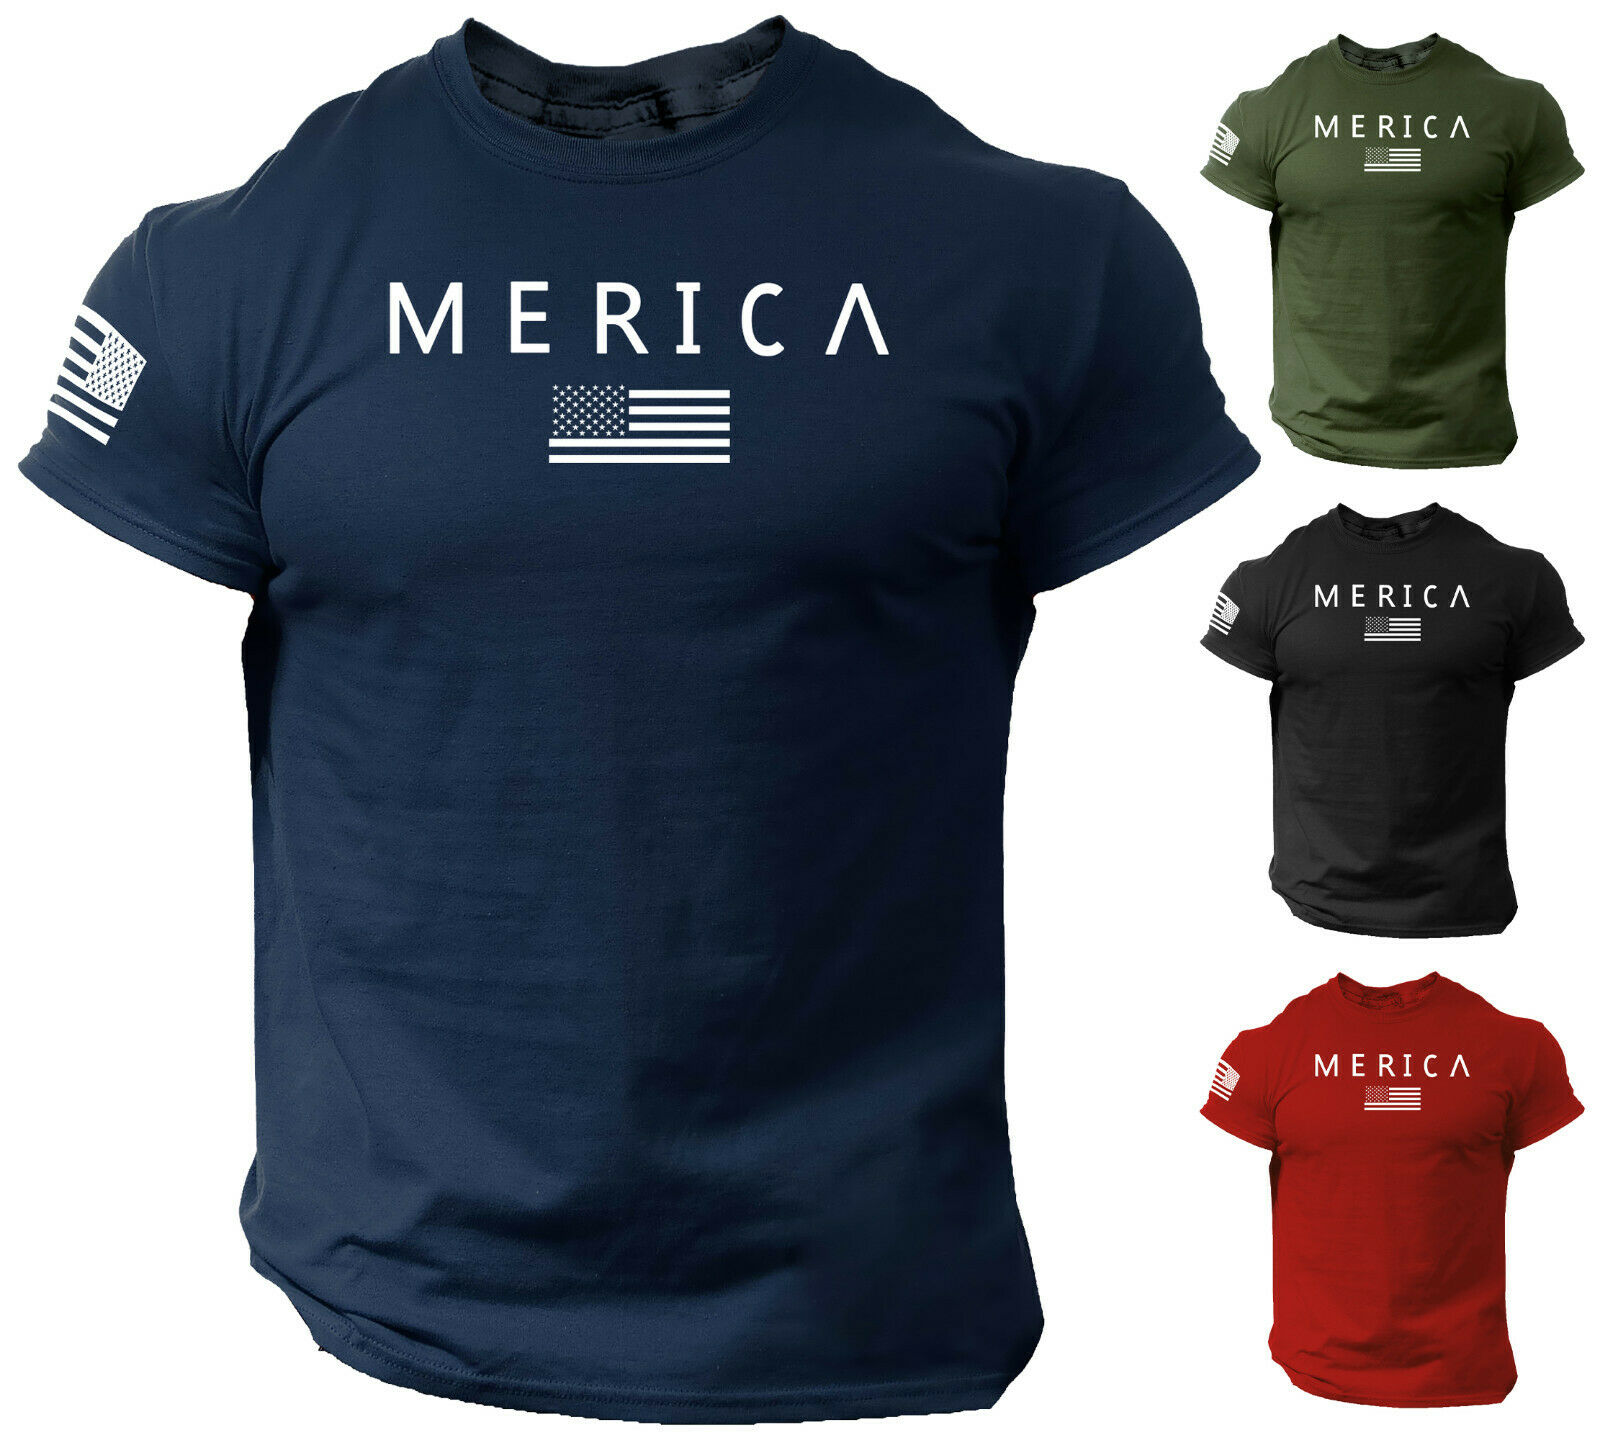 Merica Army StyleT Shirt US Flag American Military Gun Top Clothing, Shoes & Accessories